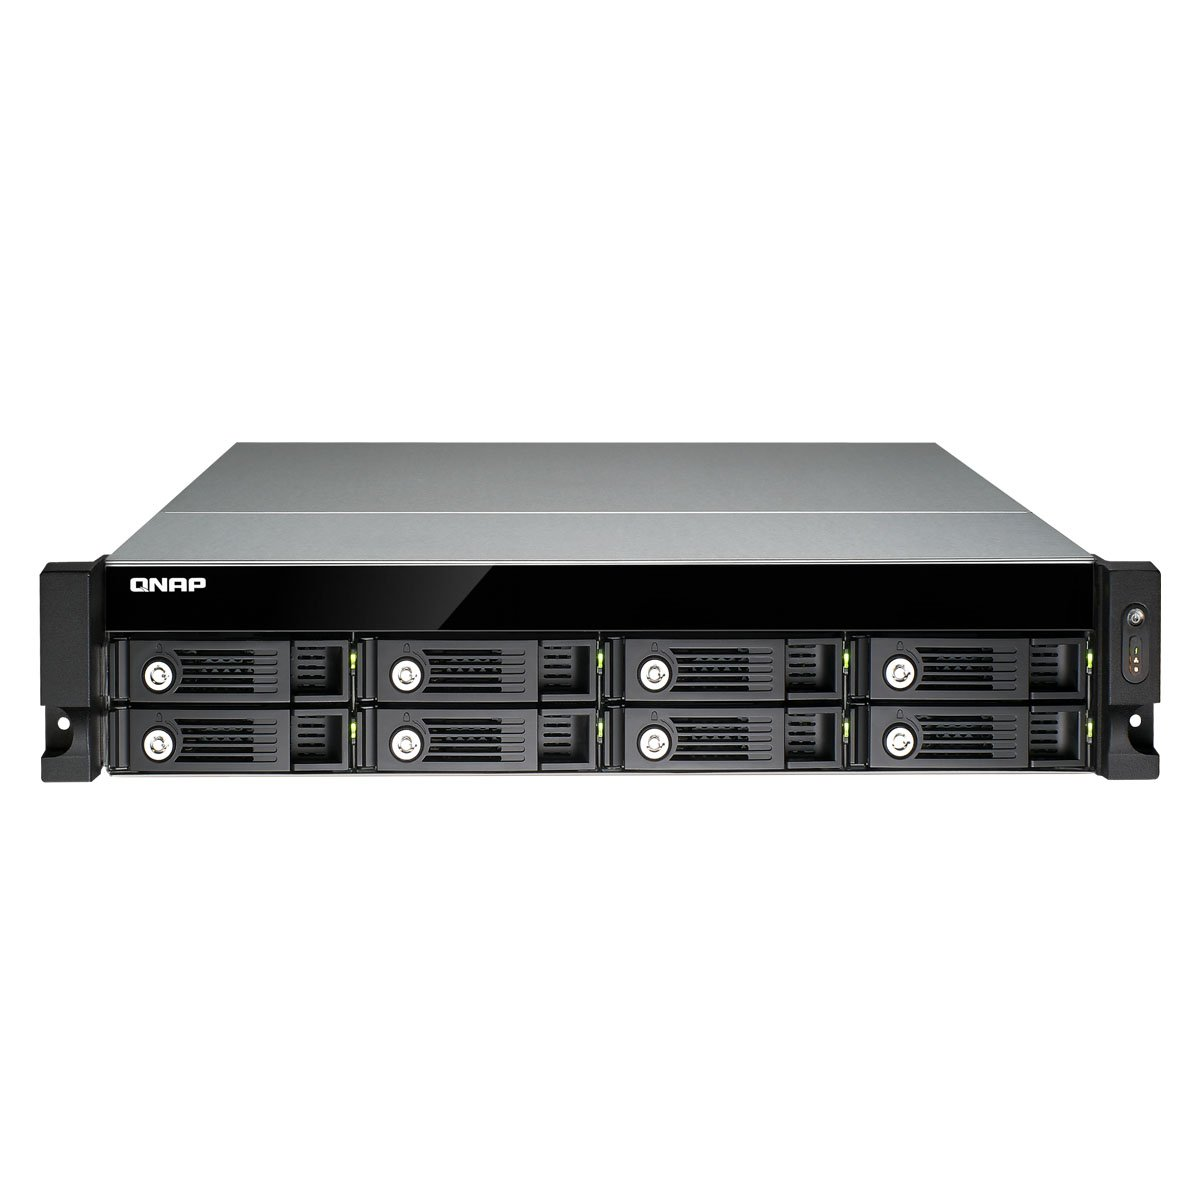 QNAP TS-853U-RP 8-bay 2U iSCSI NAS, Intel 2.0GHz Quad Core CPU with 4GB RAM, 2.5''/3.5'' SATA 6Gb/s, Hot-swappable, Redundant PSU